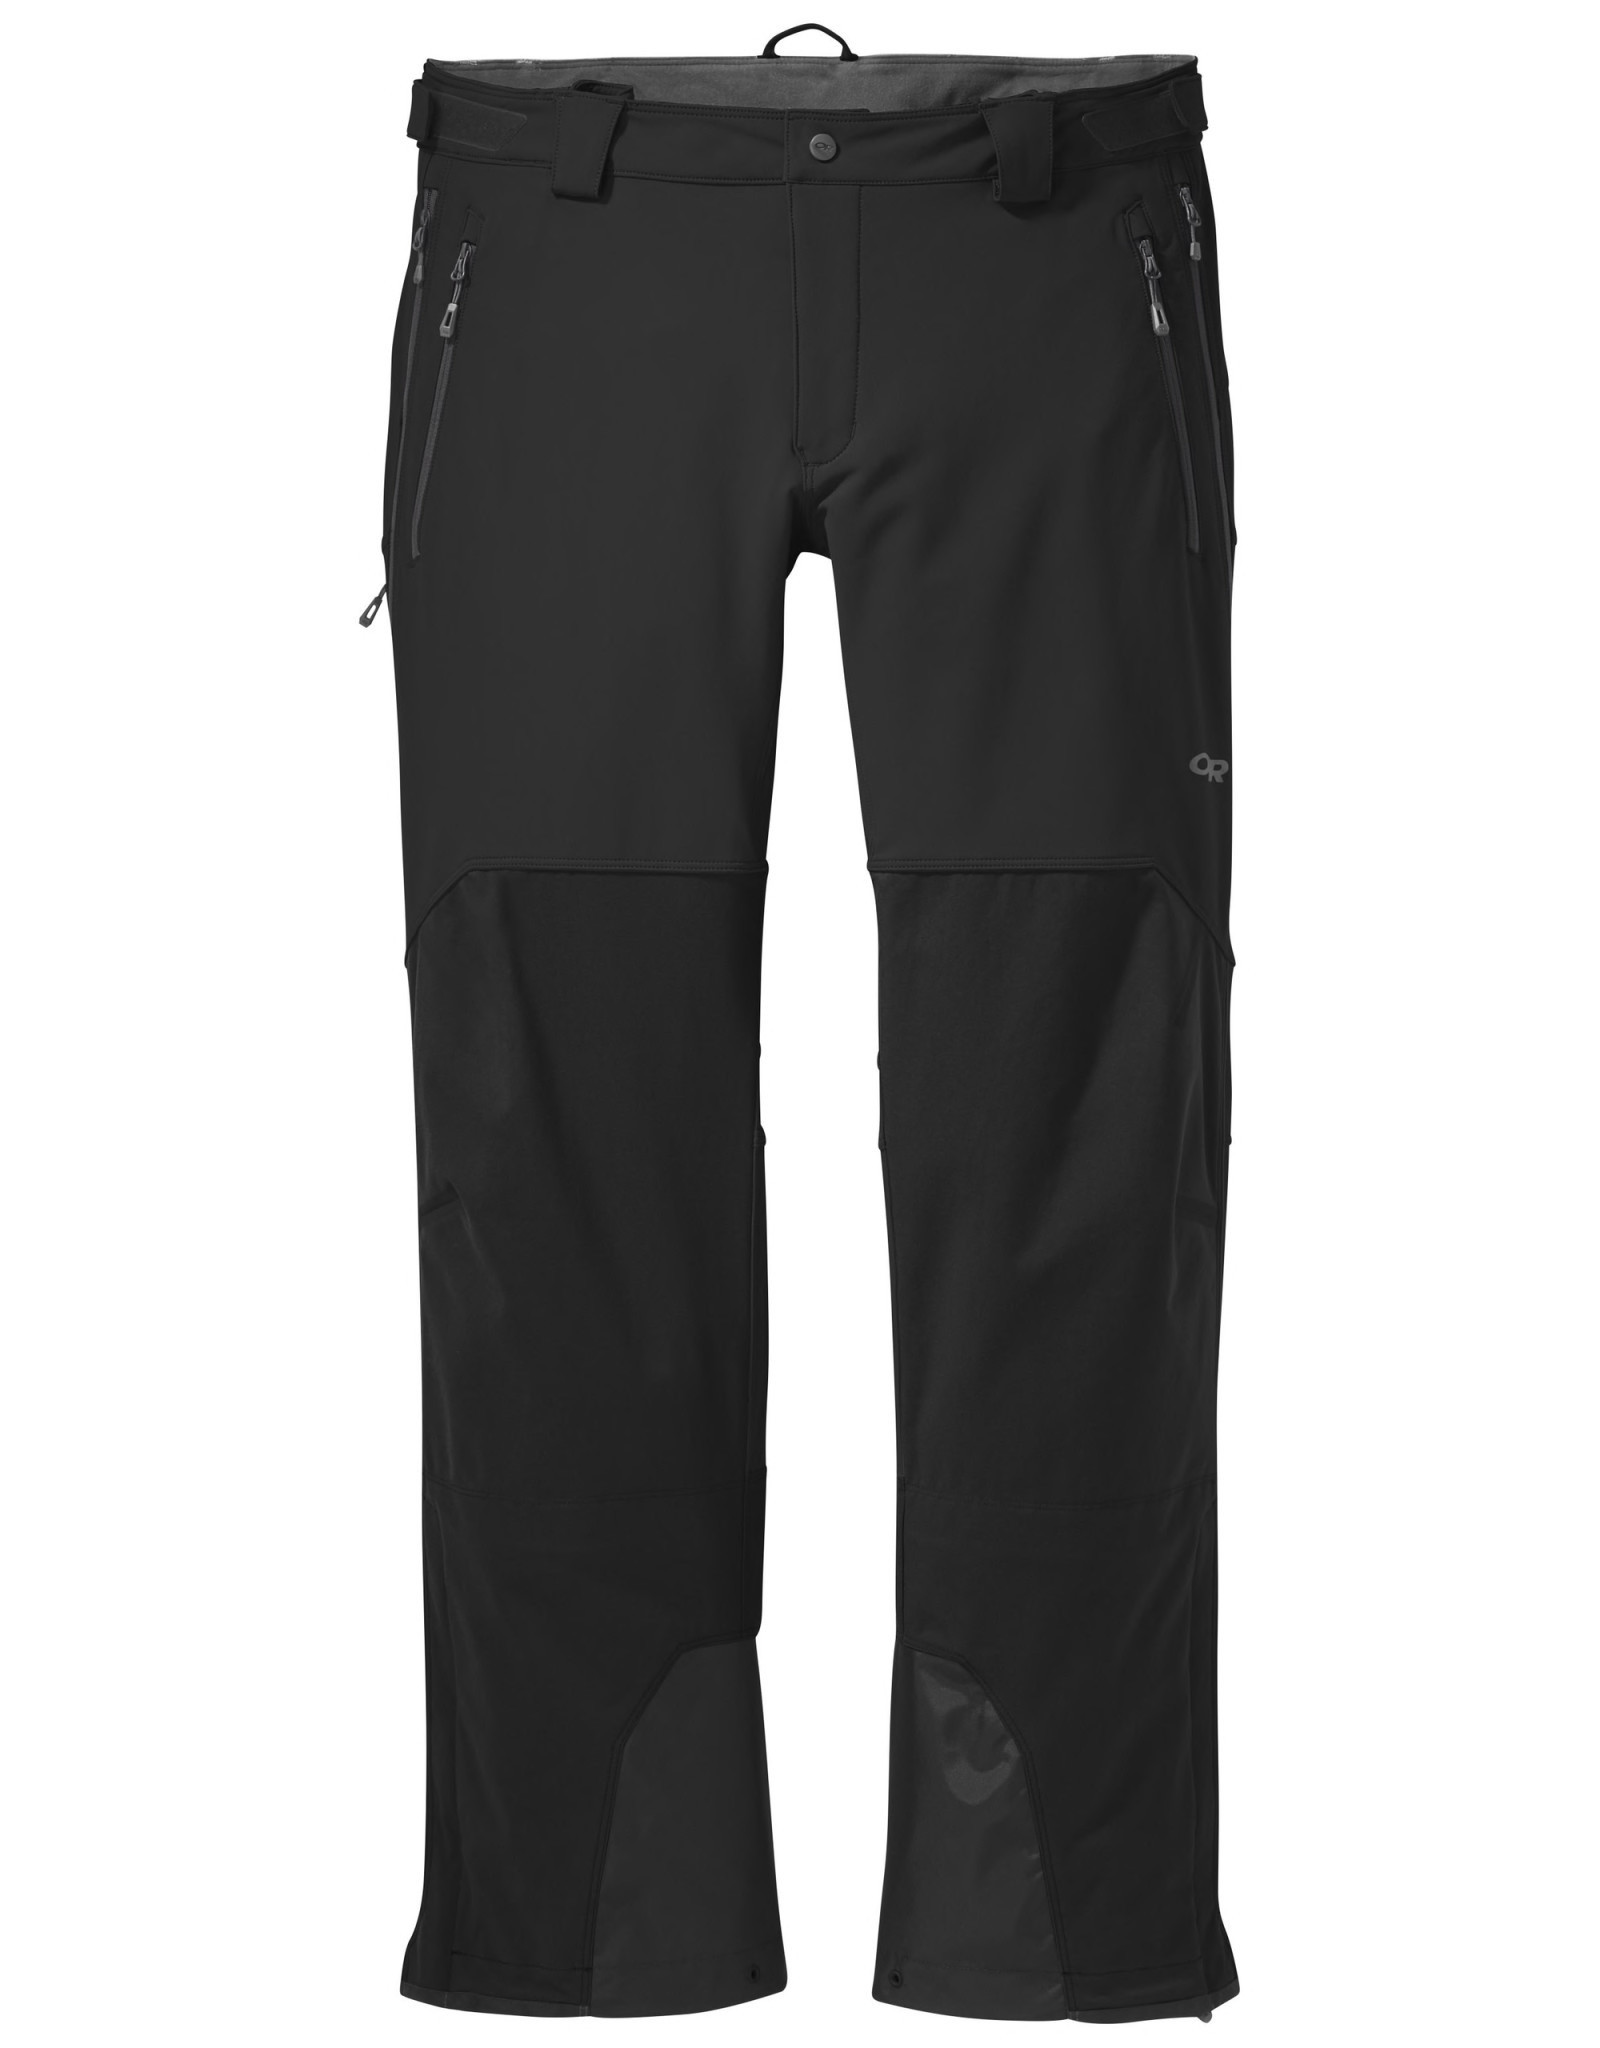 Outdoor Research Outdoor Research M's Trailbreaker II Pants